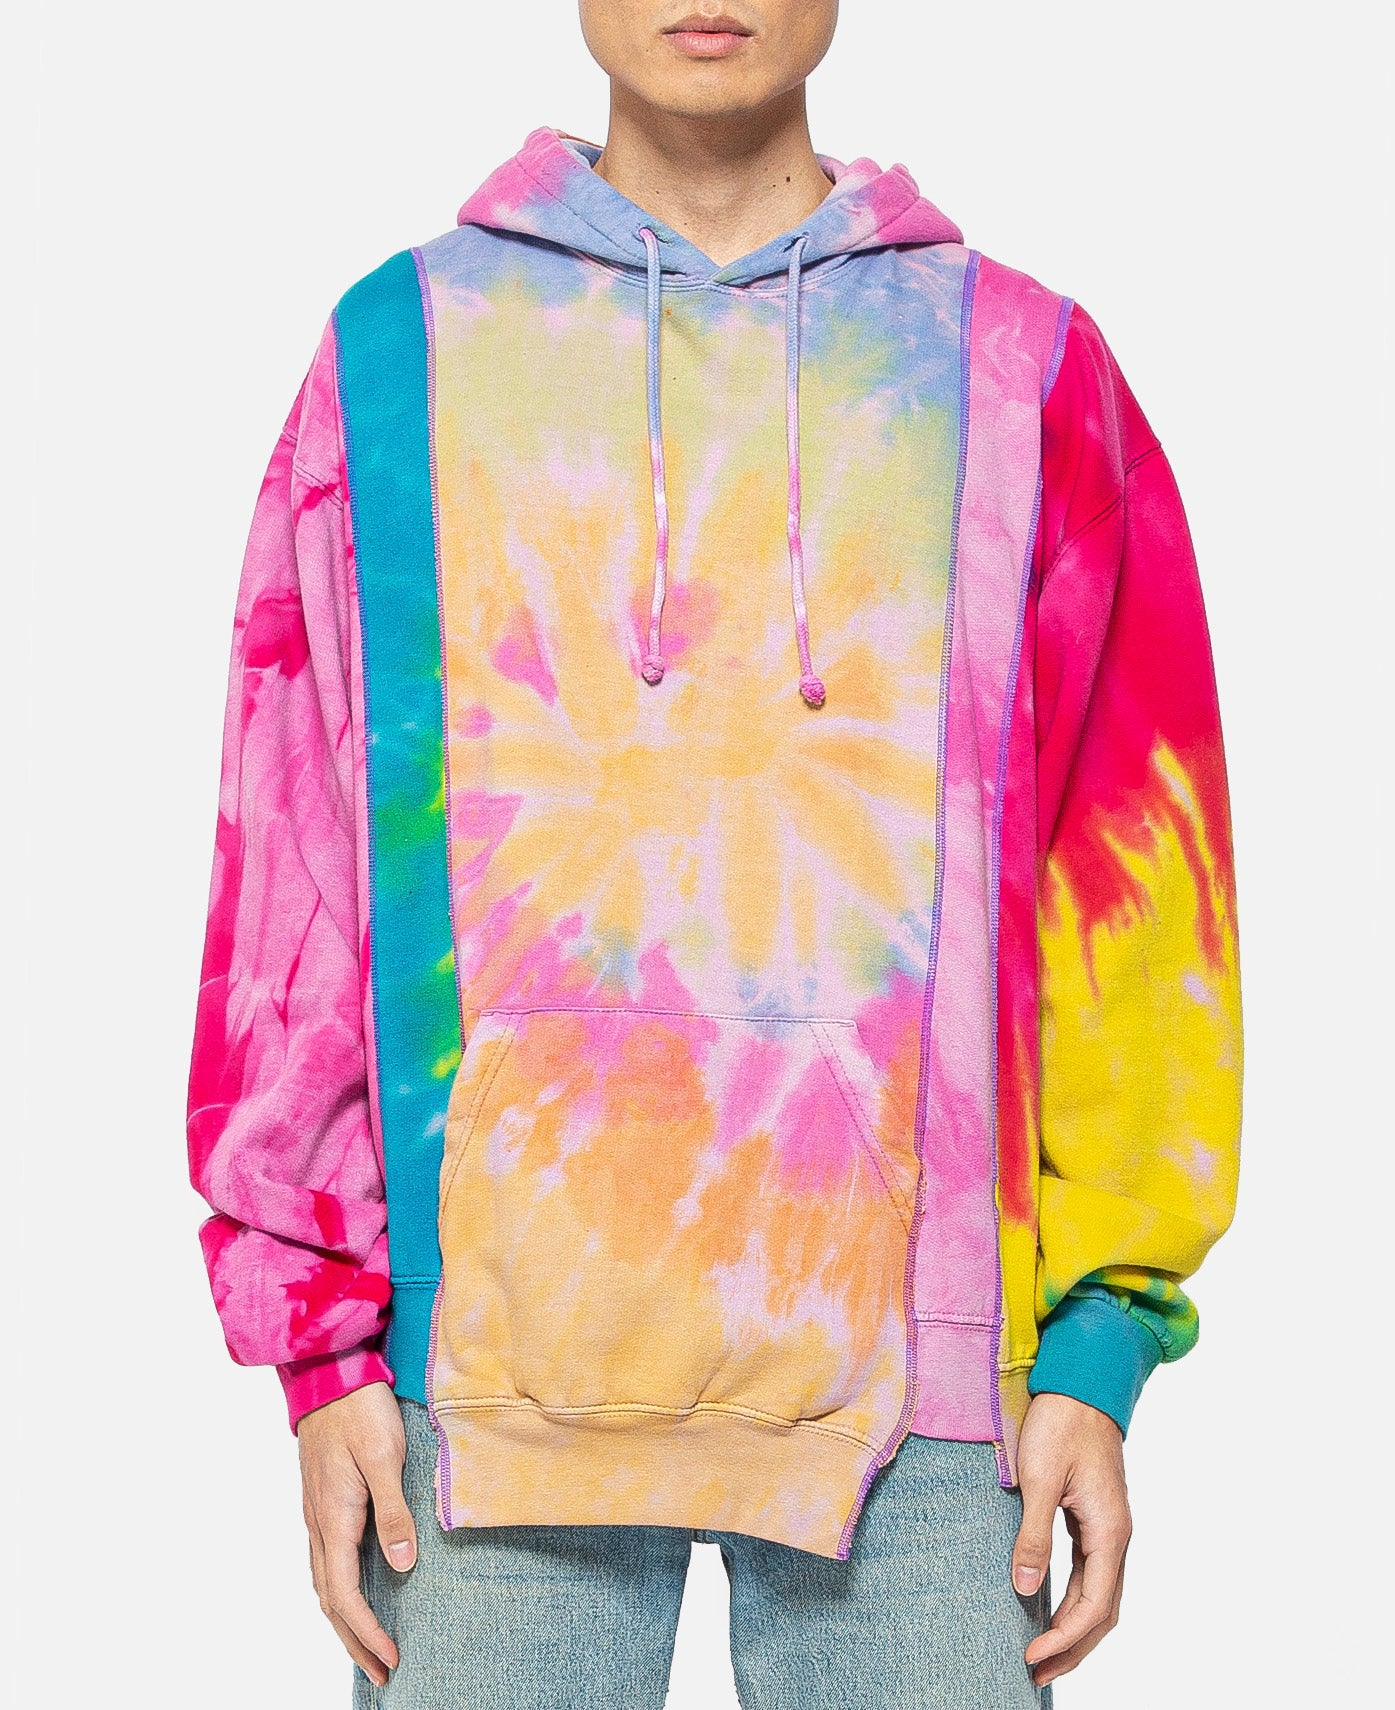 Rebuild By Needles 5 Cuts Hoodie (Tie Dye)